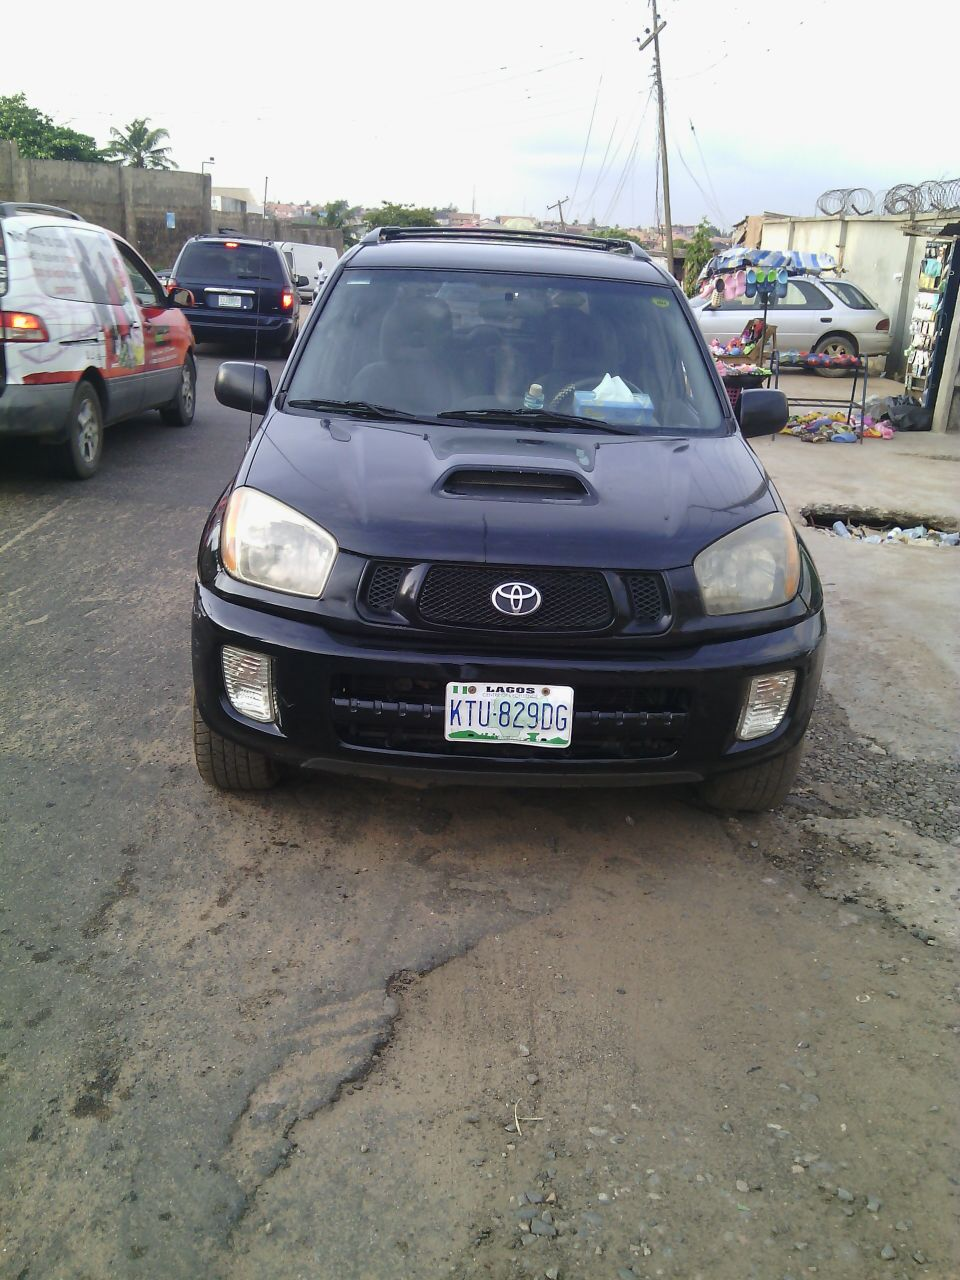 2003 Toyota Rav4 Available Autos Nigeria 2001 Lights Used Very Clean Automatic Transmission Fabric Interior Factory Ac Cd Player Alloy 4plugs 4brand New Tyres